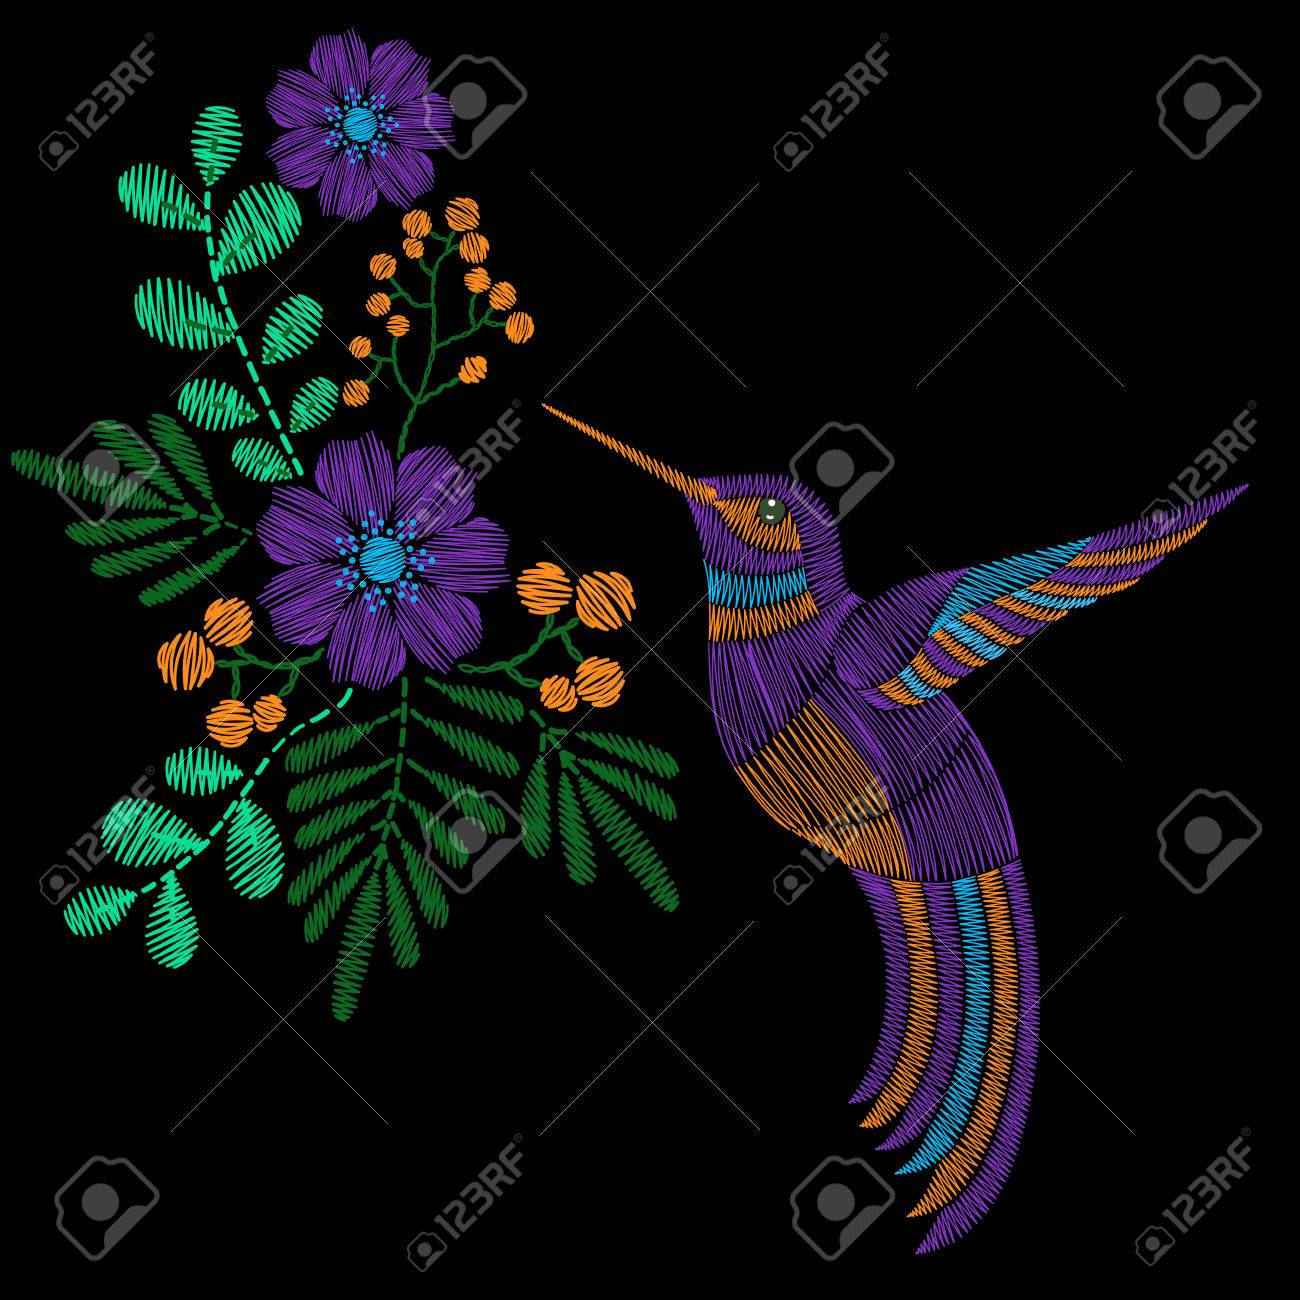 Embroidery stitches with hummingbird, wild flowers  fashion ornament